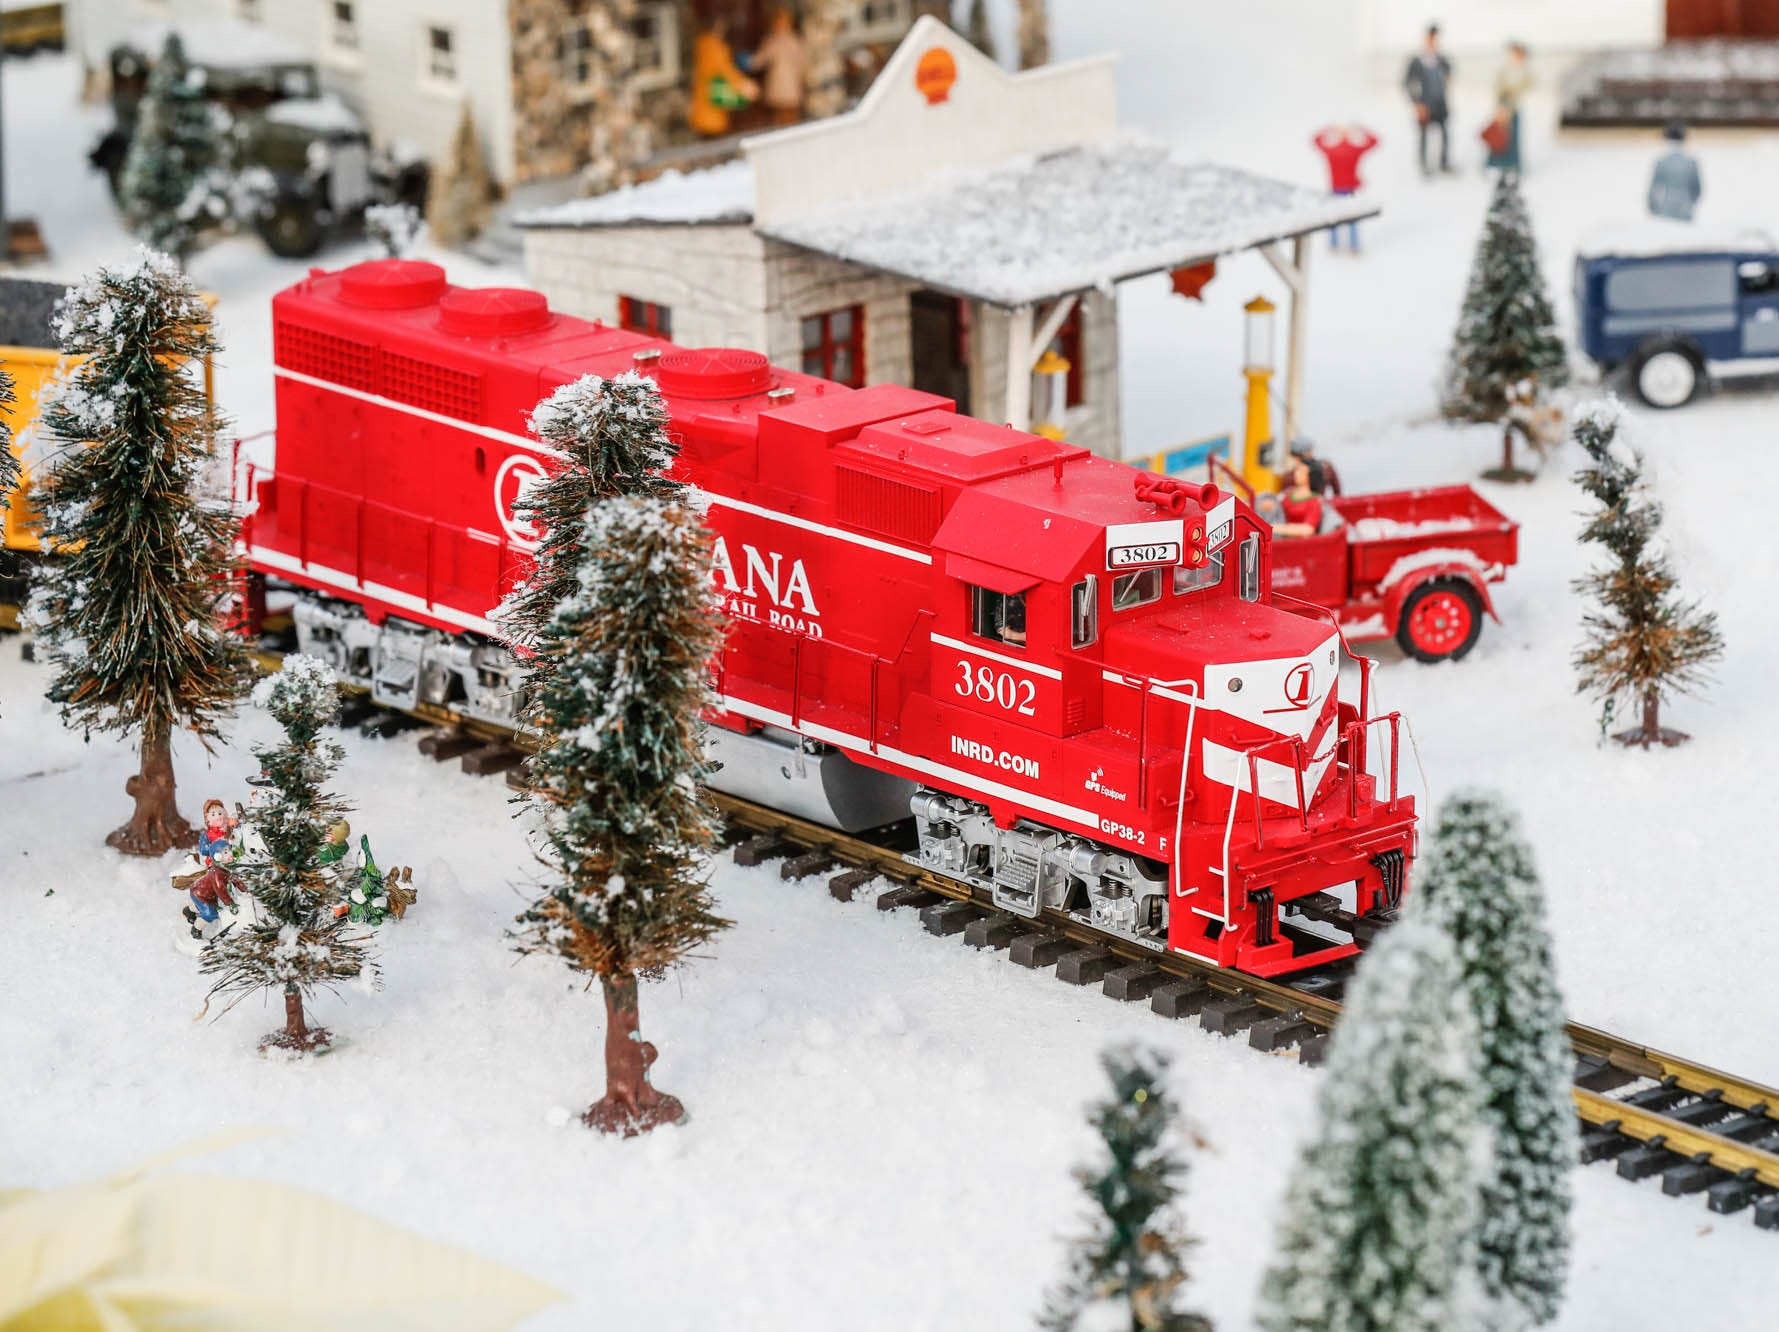 A train makes it's way through a tiny town in the Conservatory Crossing holiday display at the Garfield Park Conservatory on Saturday, Dec. 29, 2018.